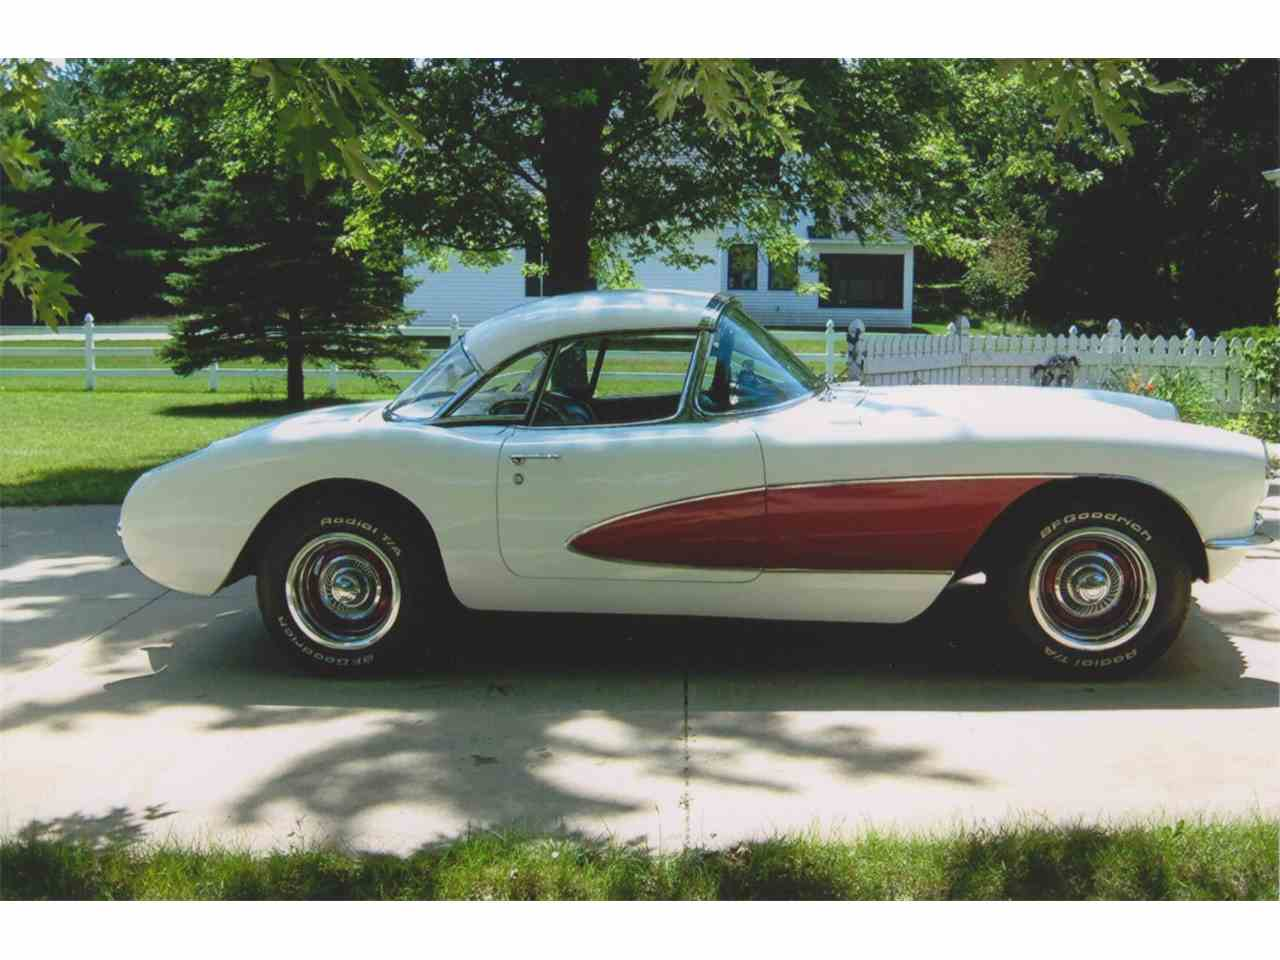 Large Picture of '57 Corvette located in Midland Michigan Offered by a Private Seller - LHW7